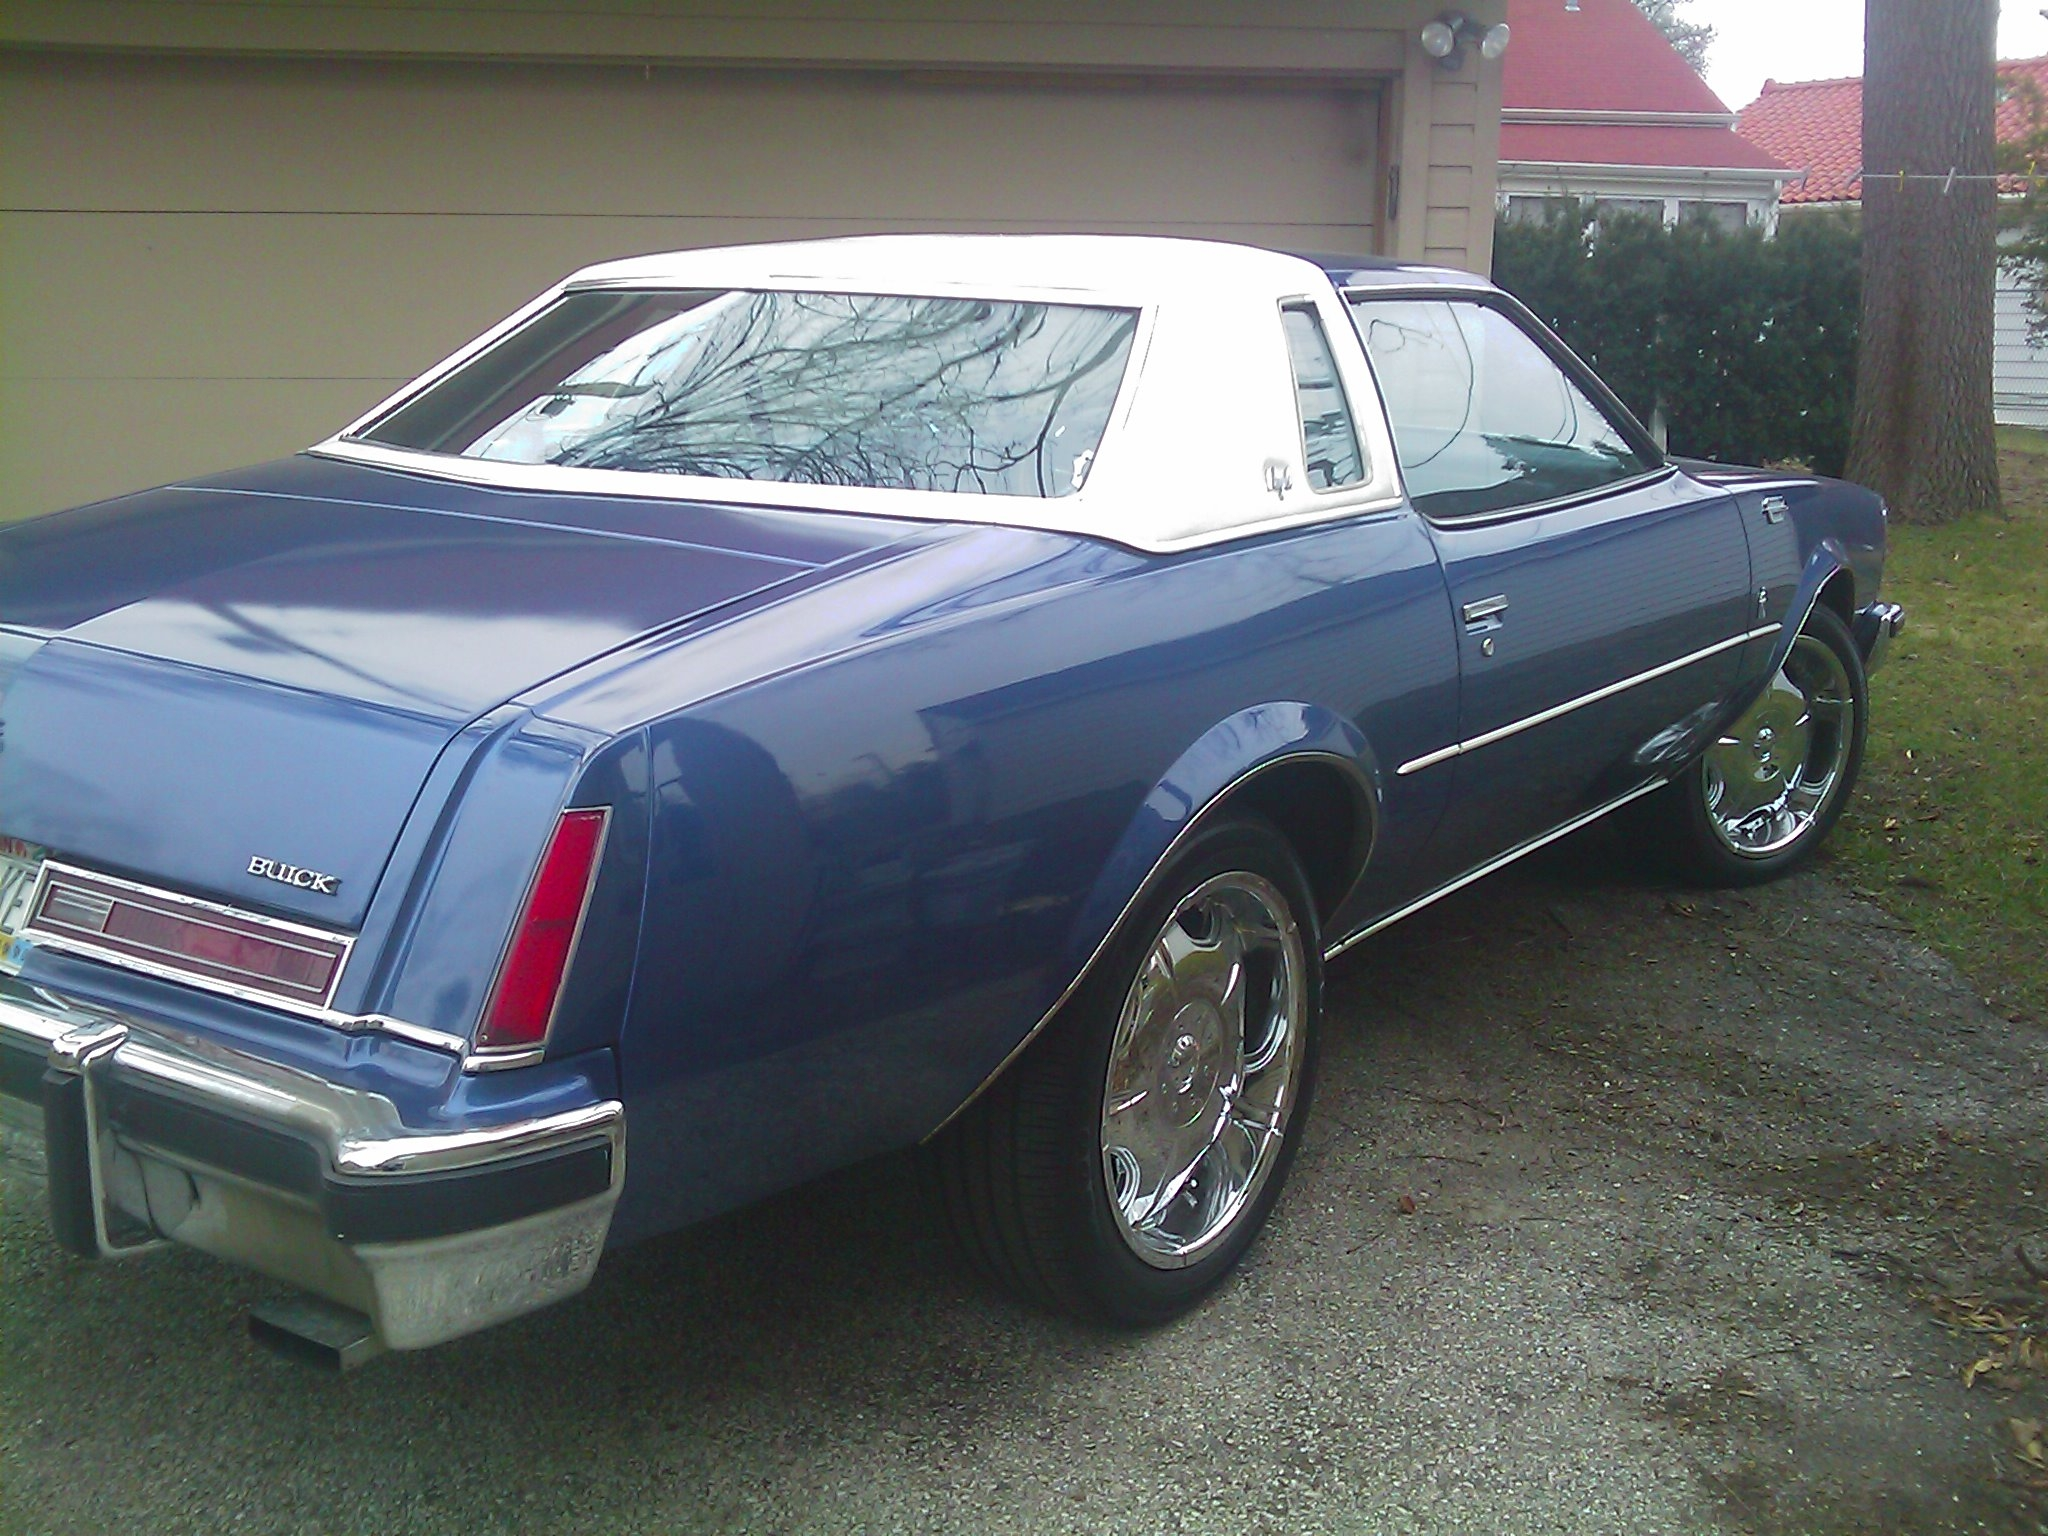 r regal skylark questions buick pic cars for sale s discussion cargurus